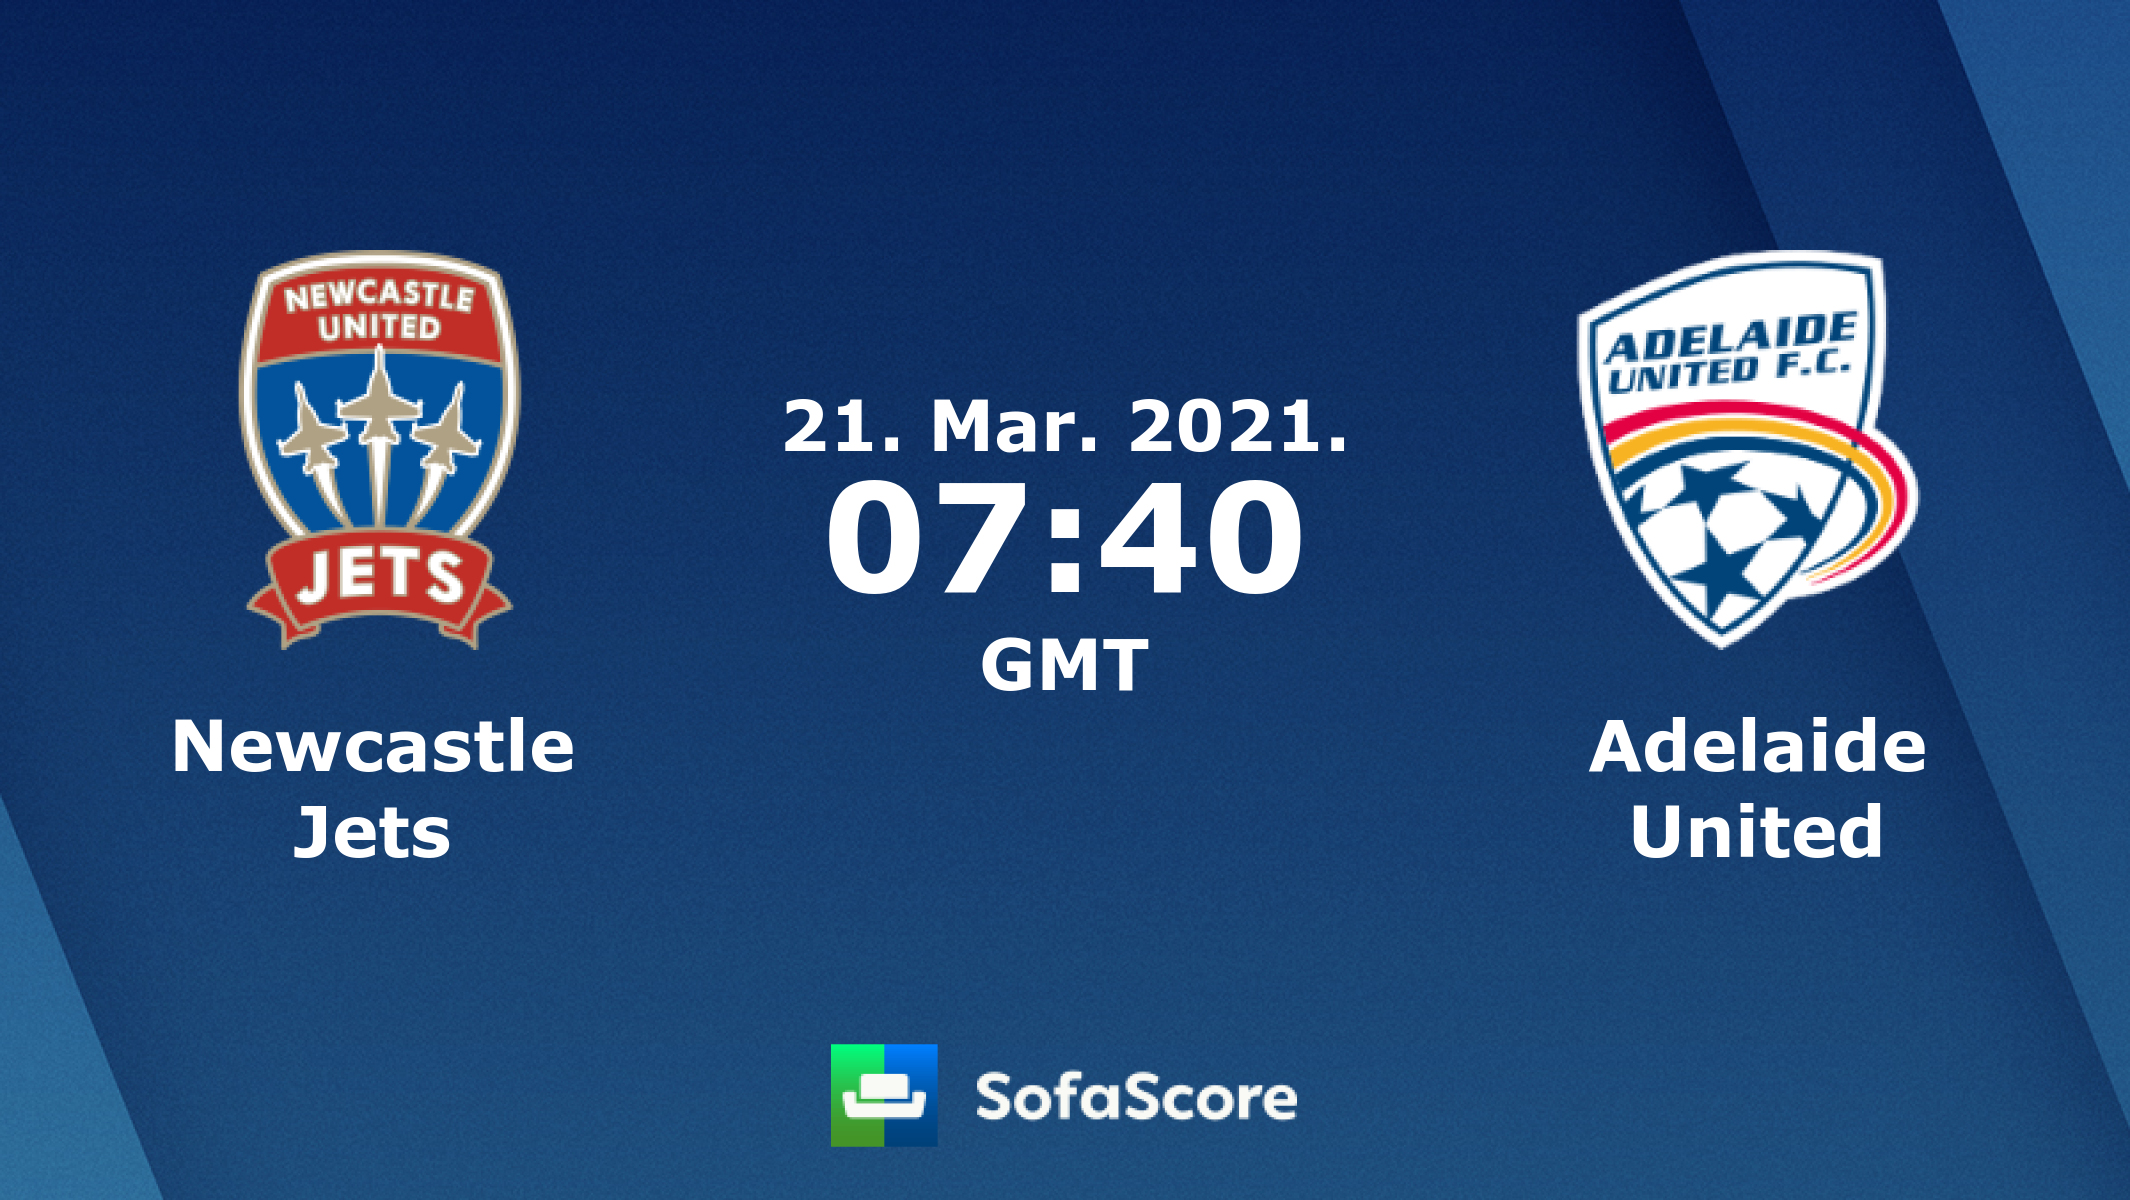 Newcastle jets vs adelaide united betting experts win bitcoins every hour